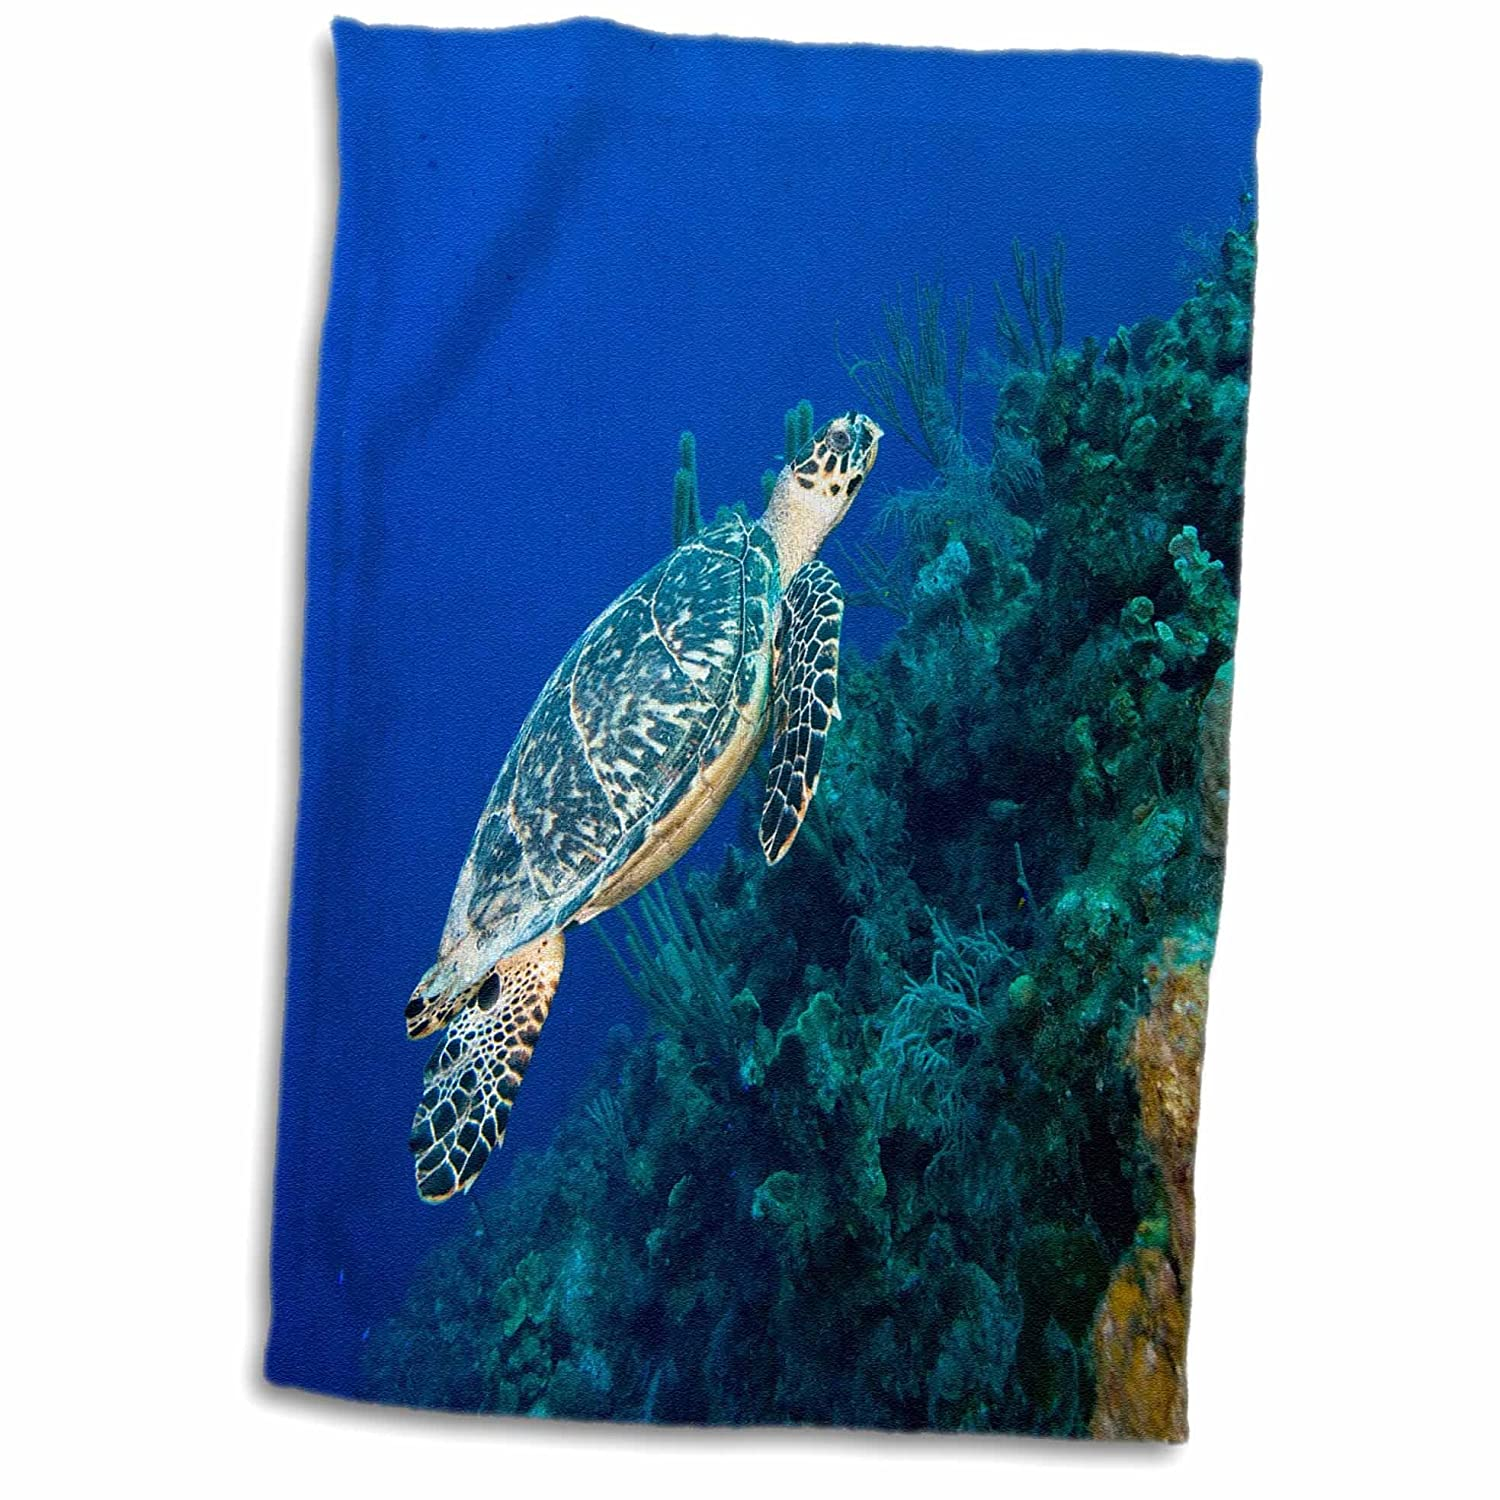 3D Rose Cayman Islands-Hawksbill Sea Turtle and Coral Reef-Ca42 Pso0091-Paul Souders Hand//Sports Towel 15 x 22